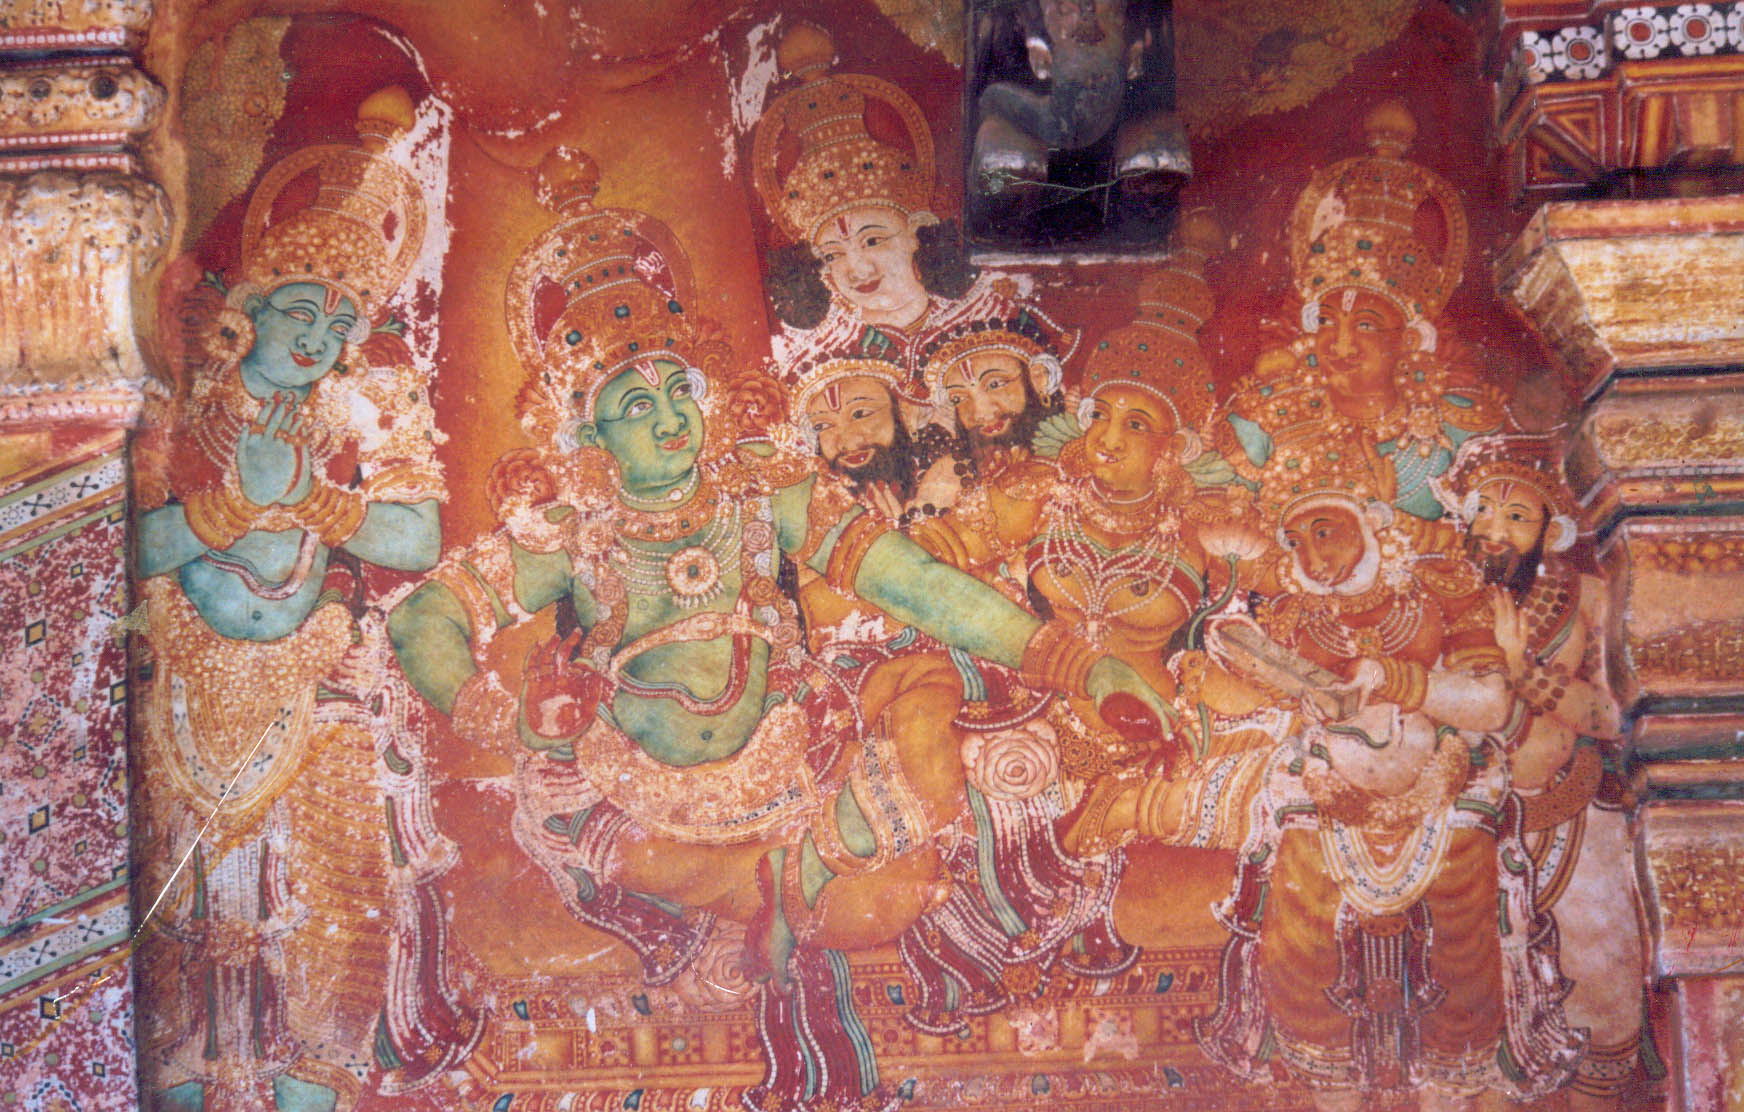 Mural painting - Sree Rama holding court